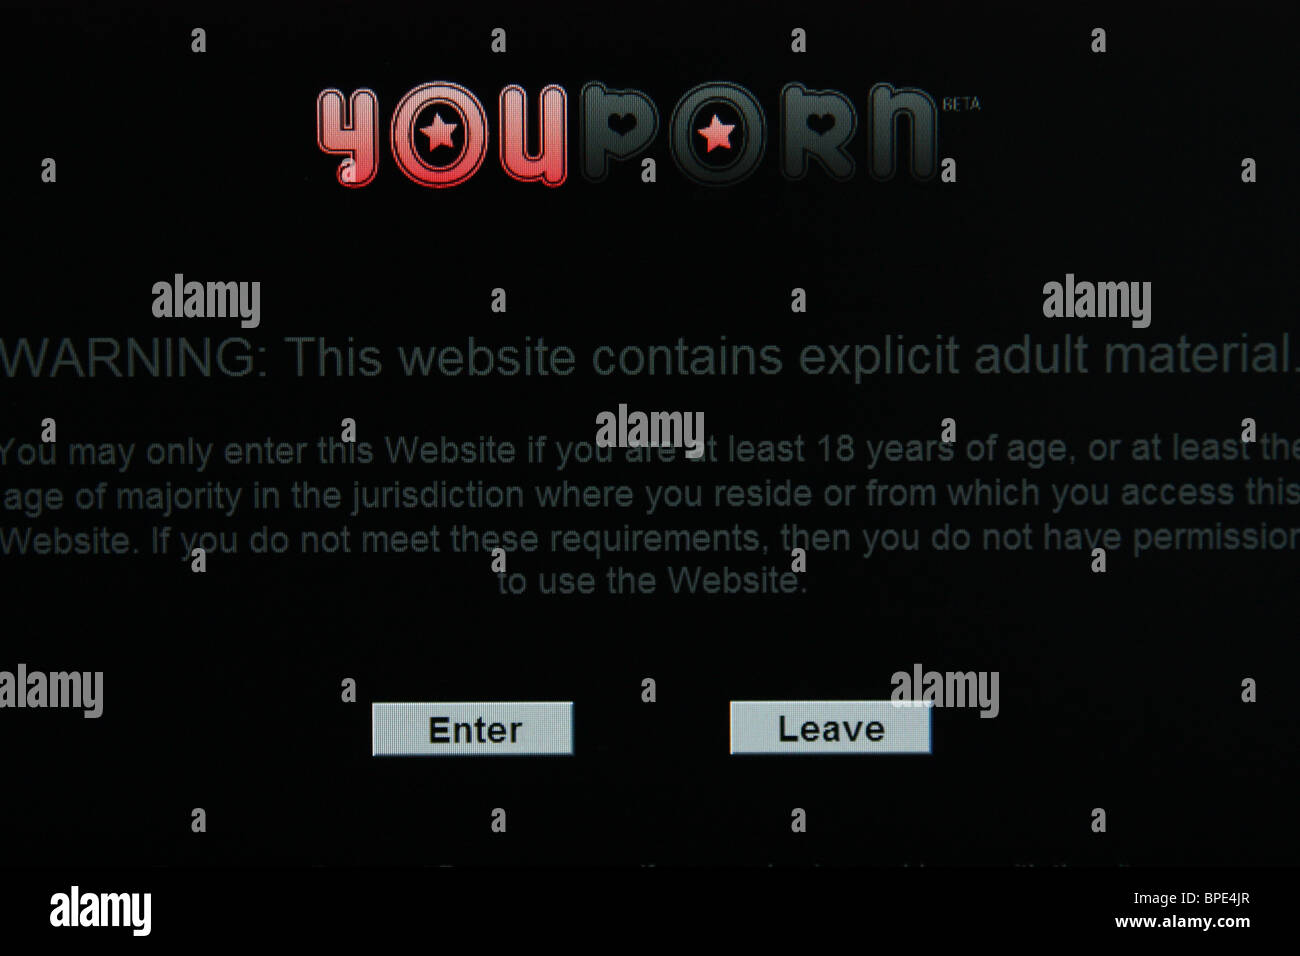 Youporn on